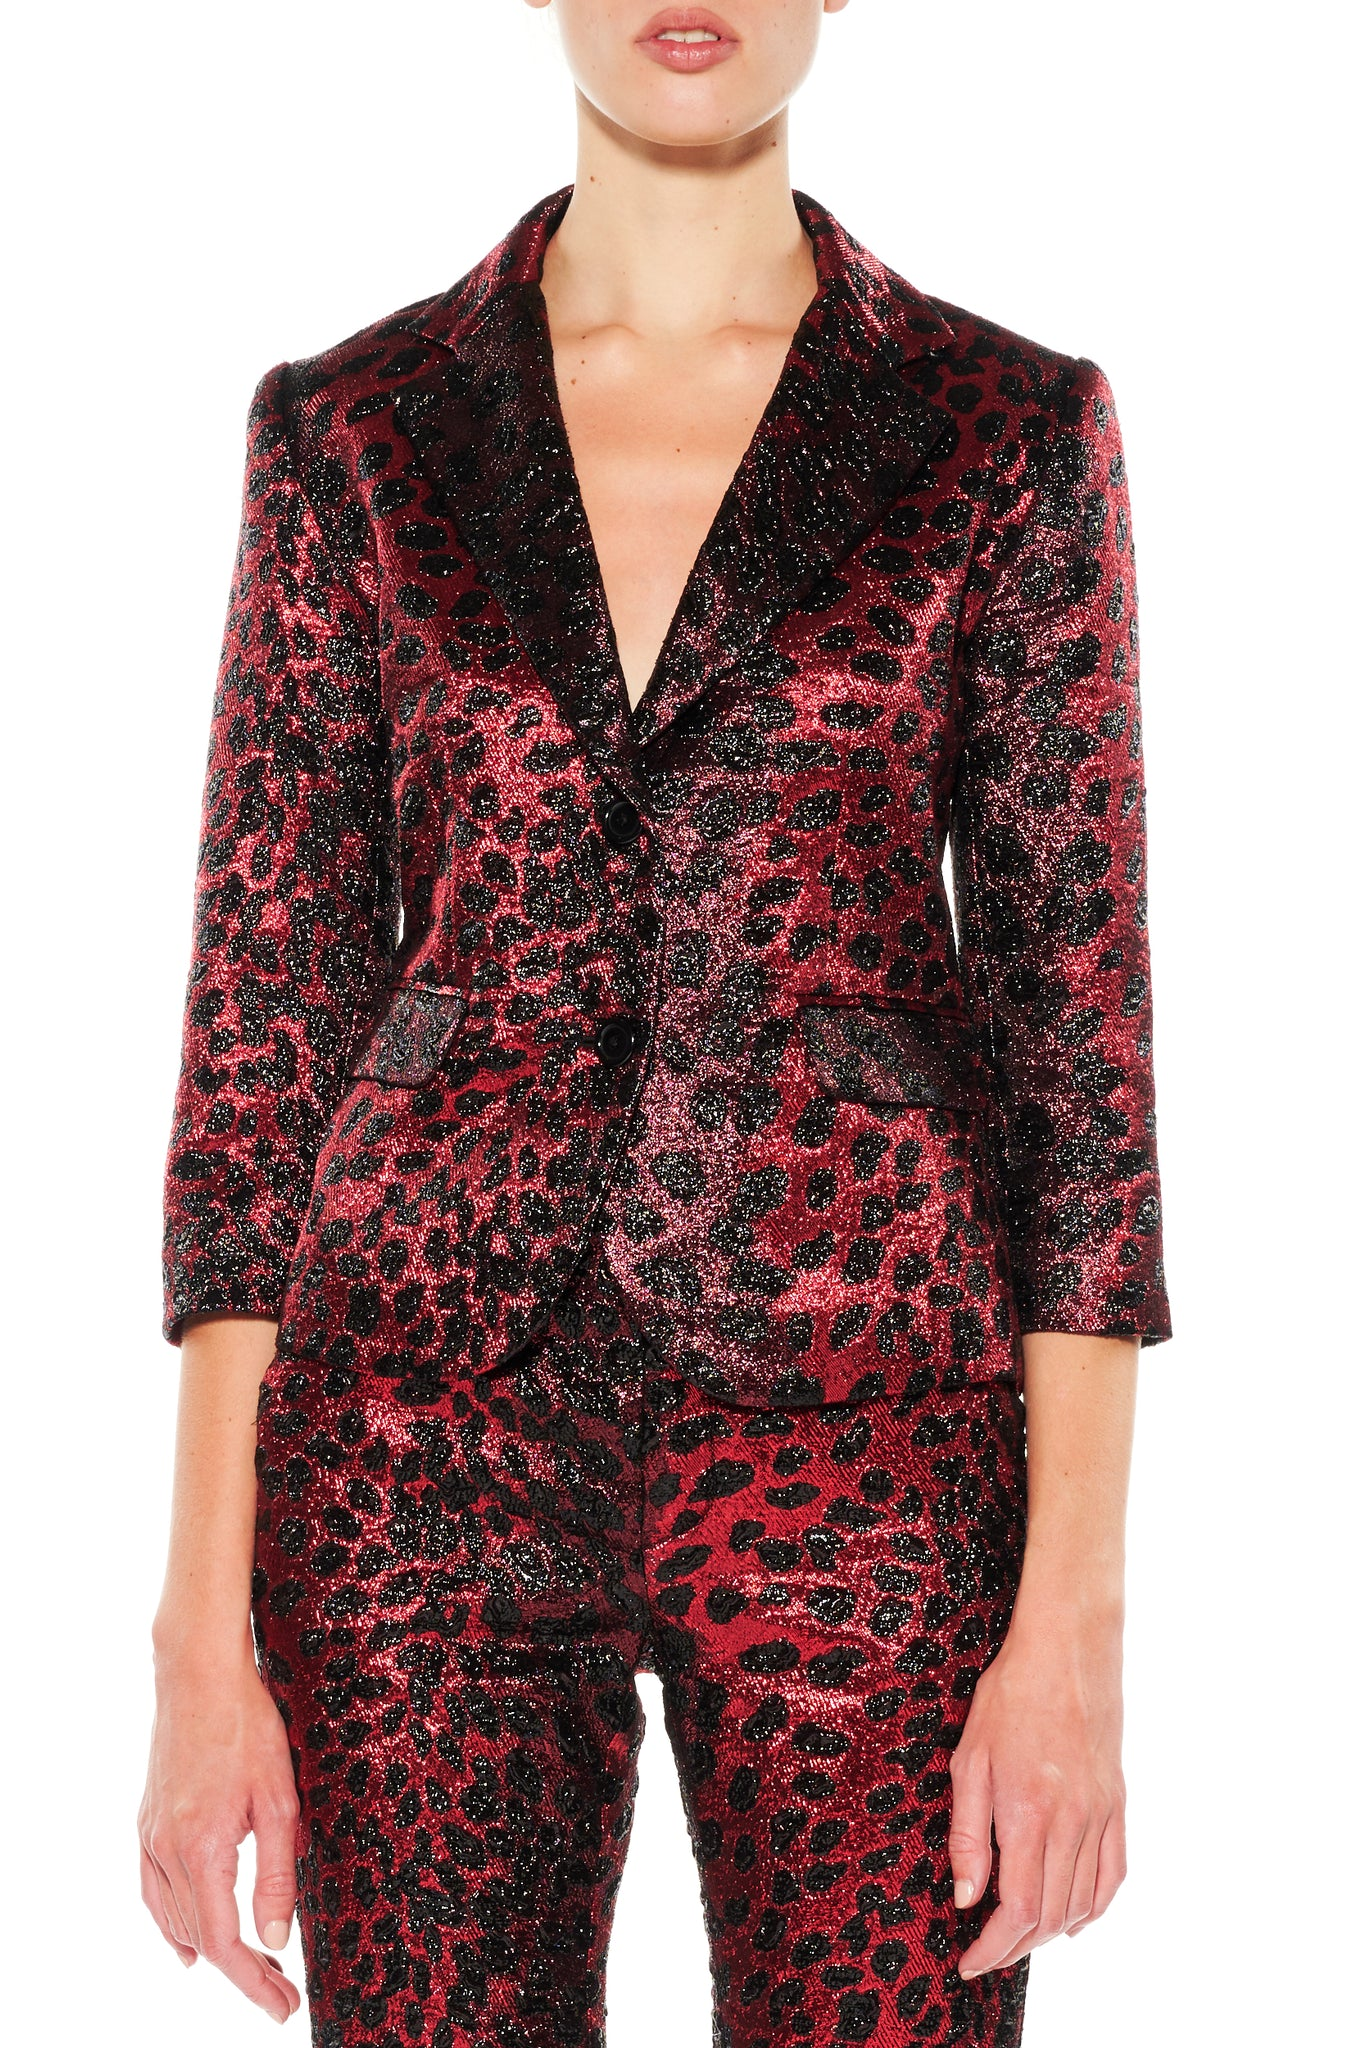 'NIGHT LEOPARD' BLAZER - Web Exclusives - Libertine